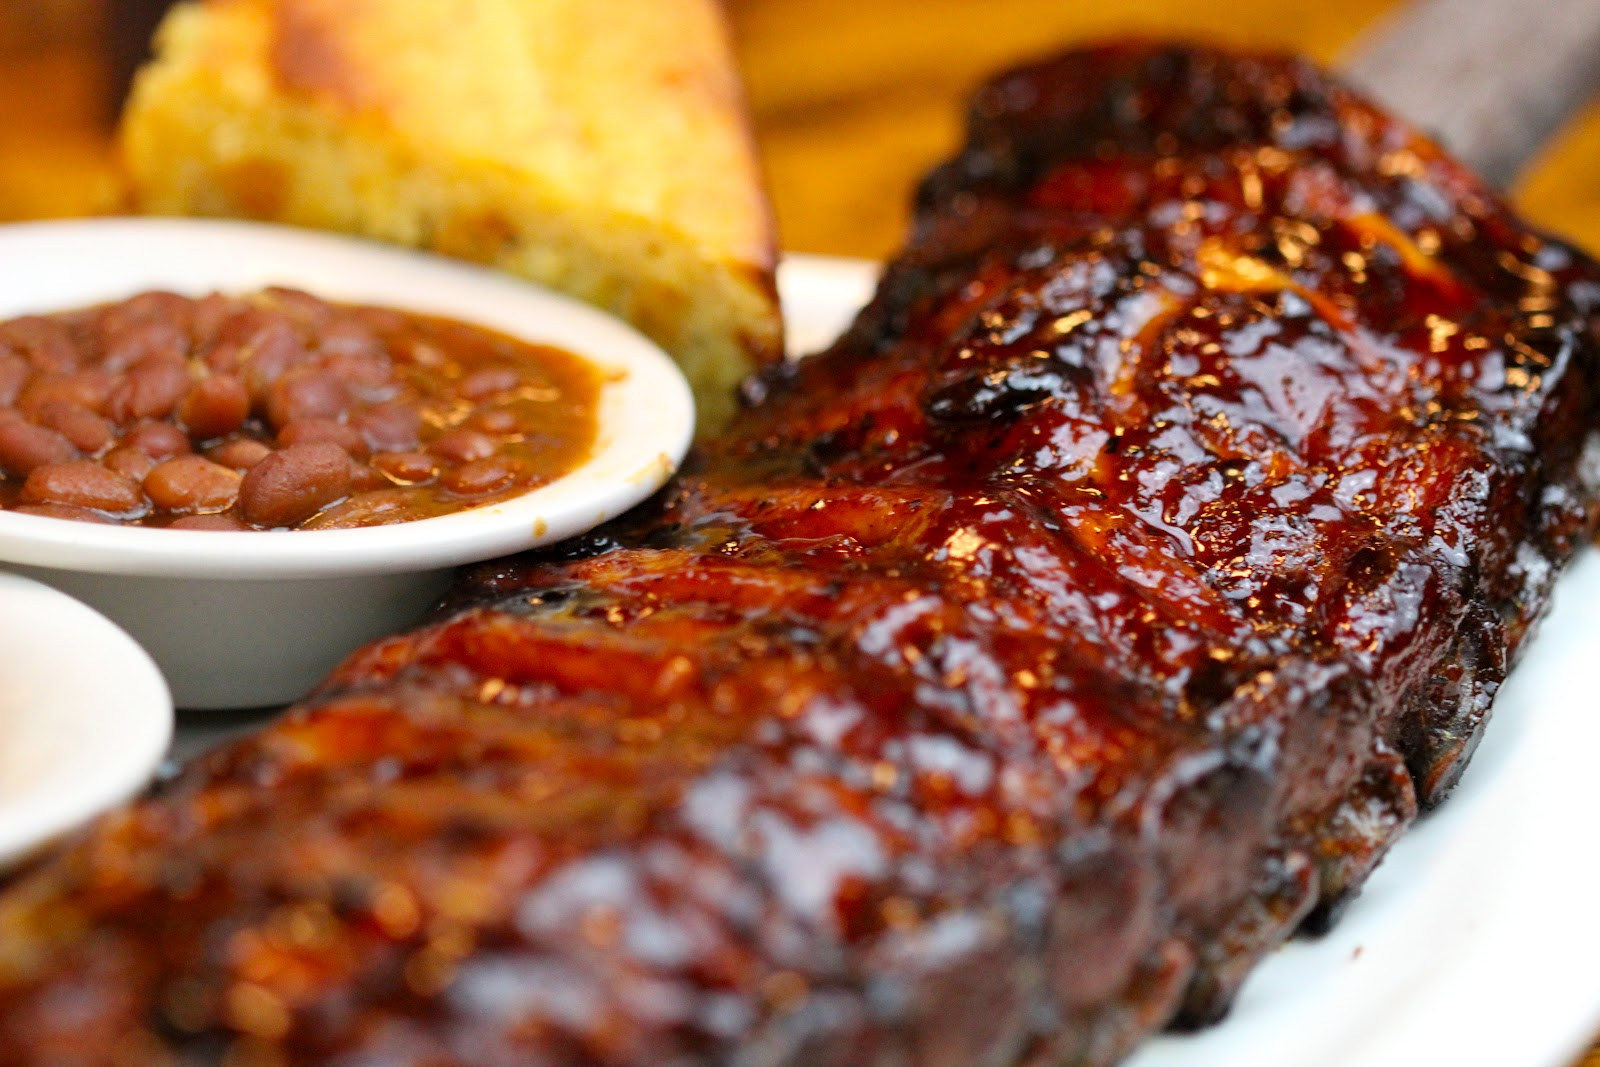 Best BBQ Spots in Philly - Wooder Ice